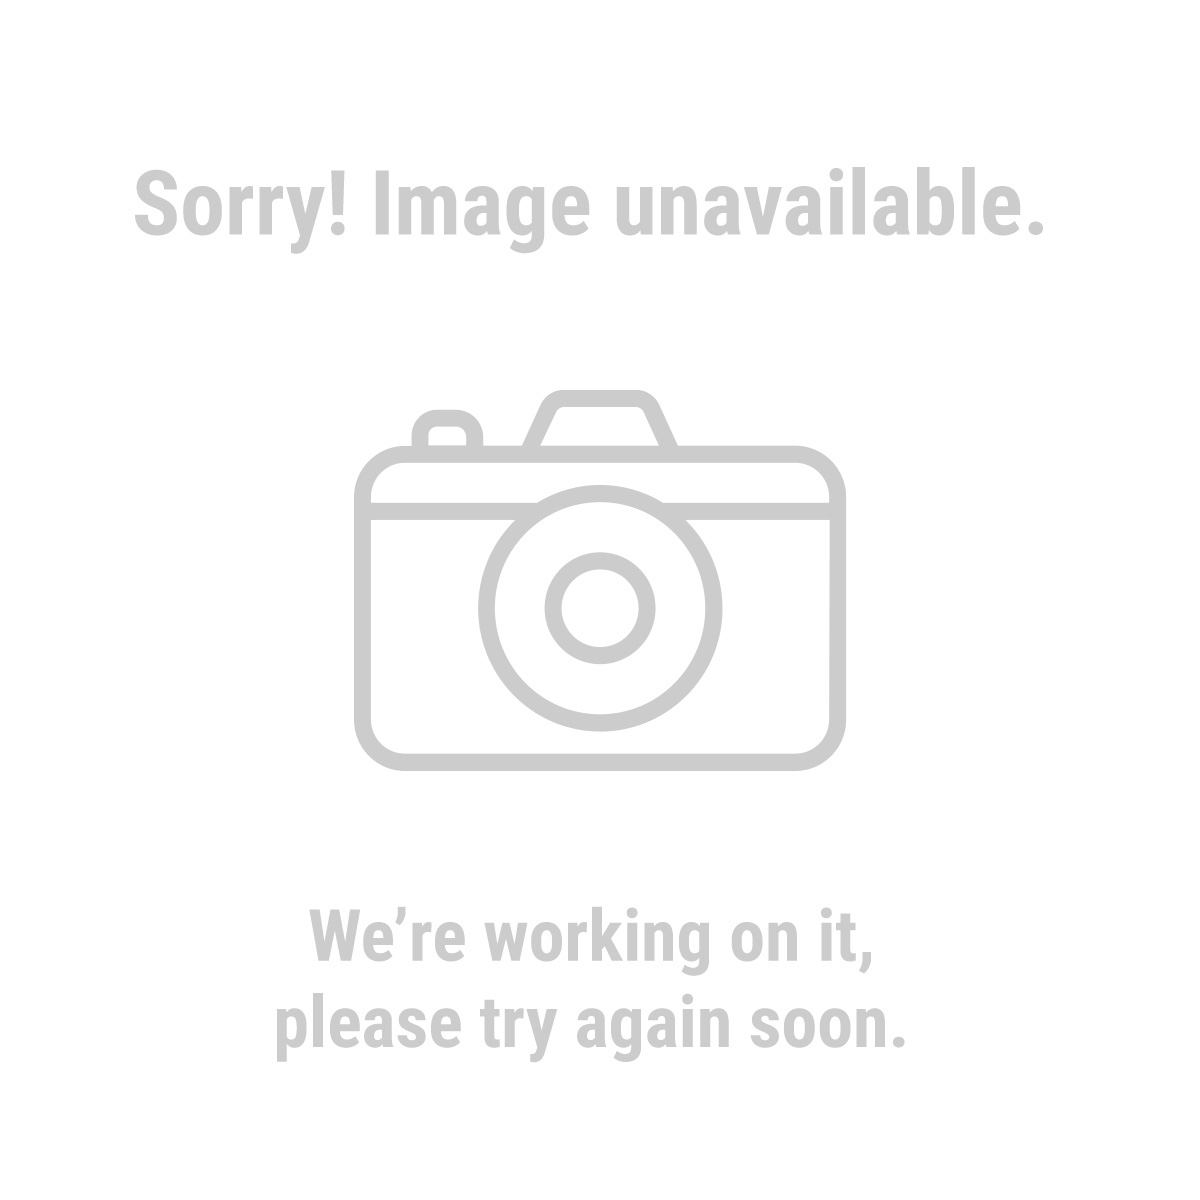 66976 Headphones, 3 Pack